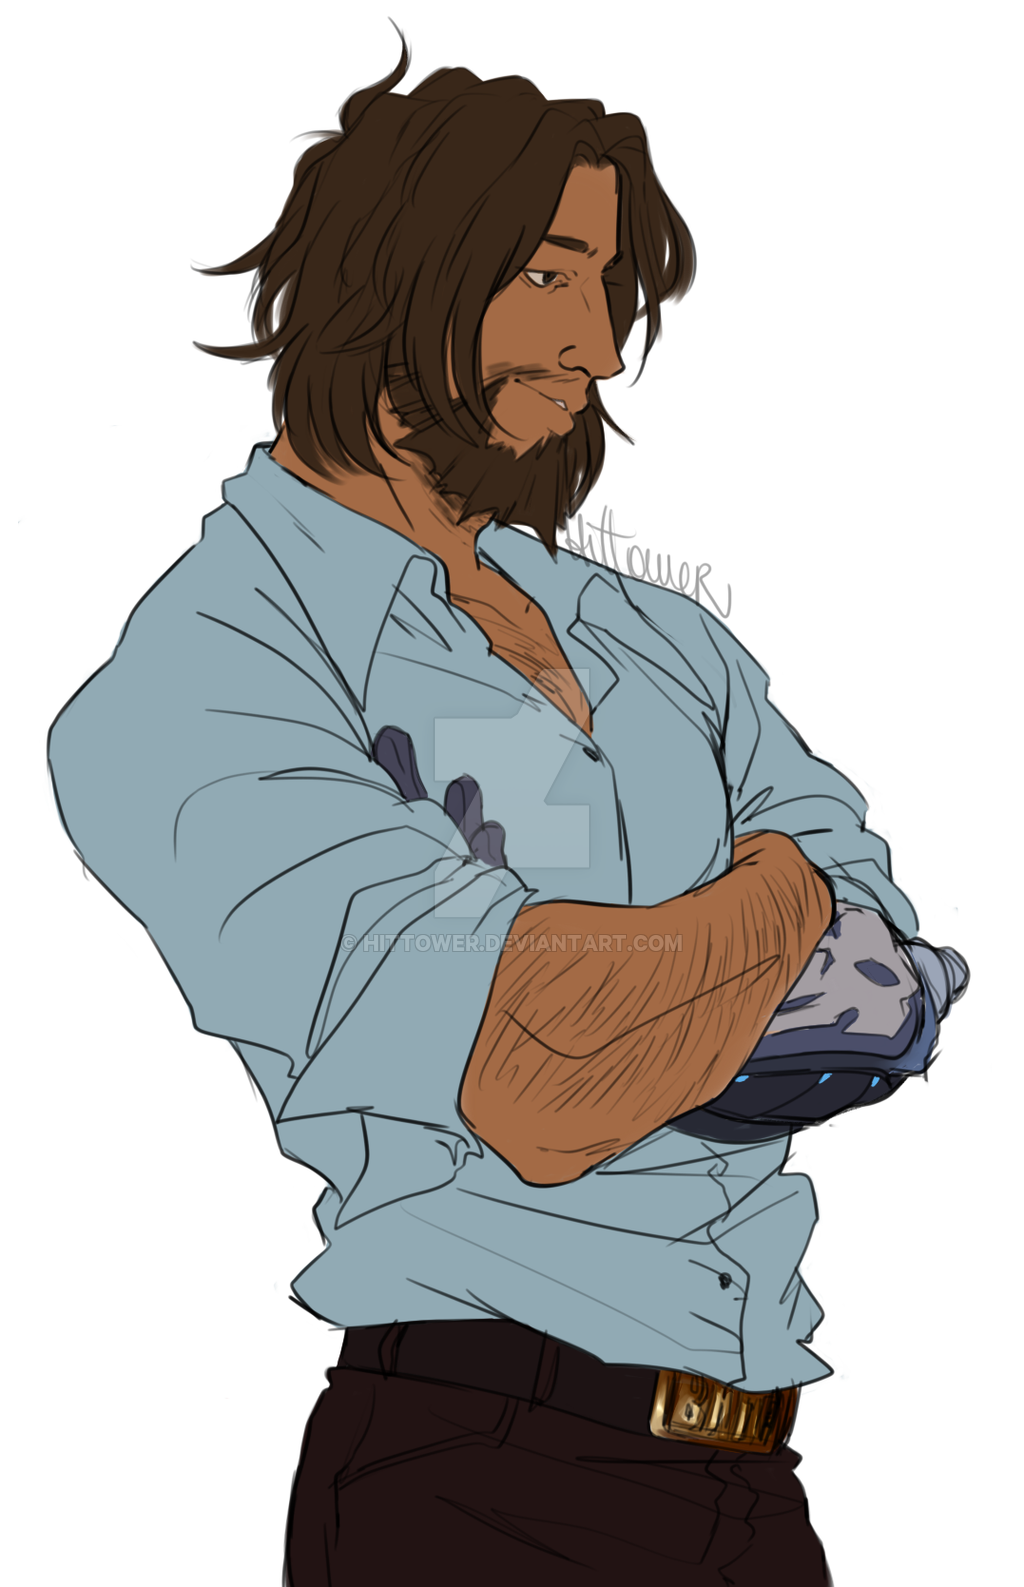 Casual Mccree By Hittower Mccree Overwatch Overwatch Fan Art Mccree